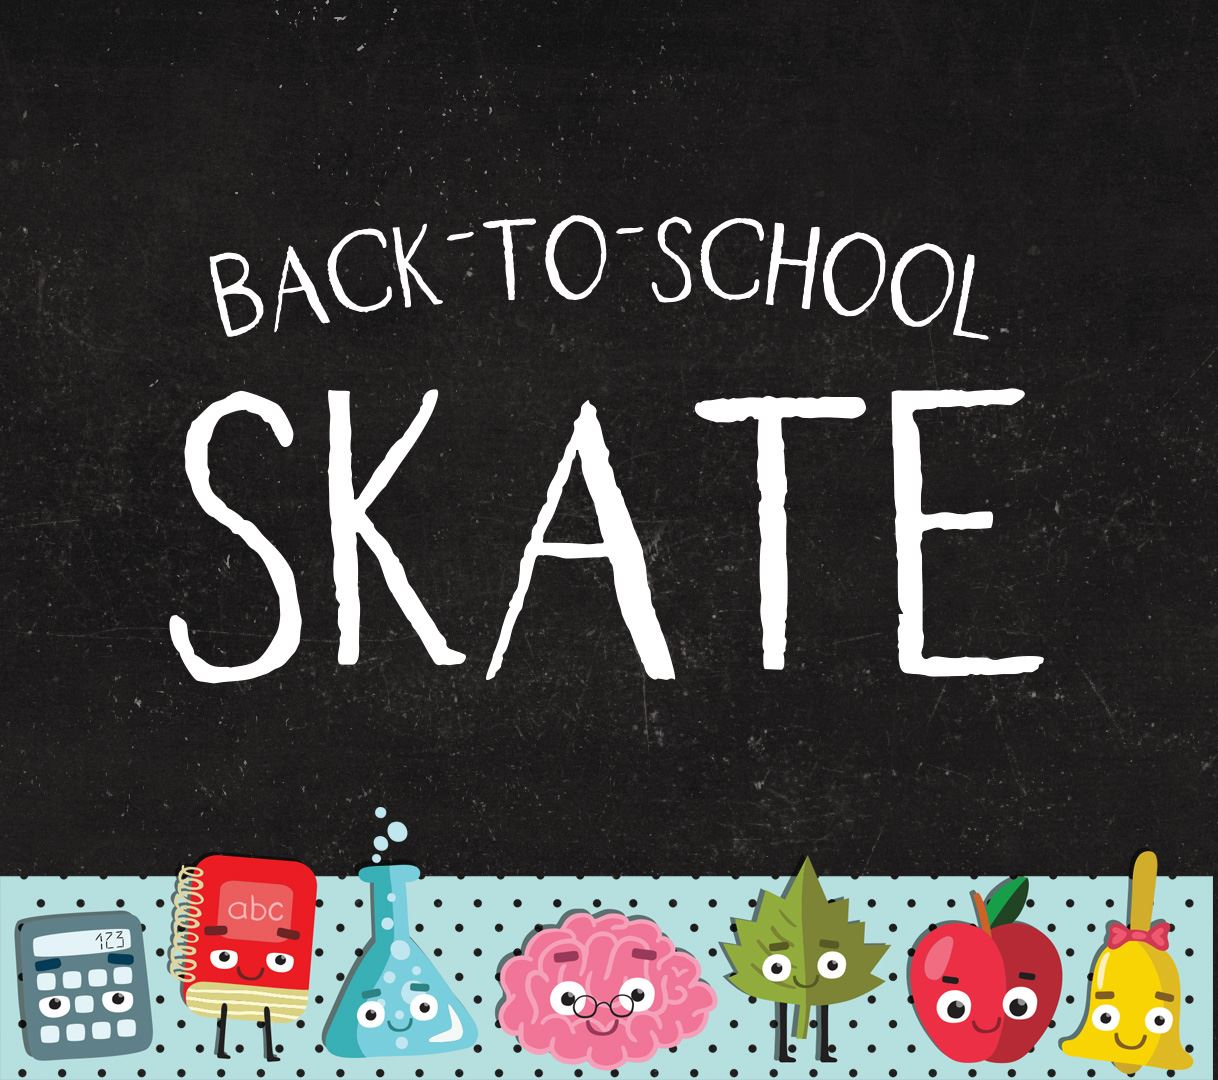 Back-to-School Skate Graphic